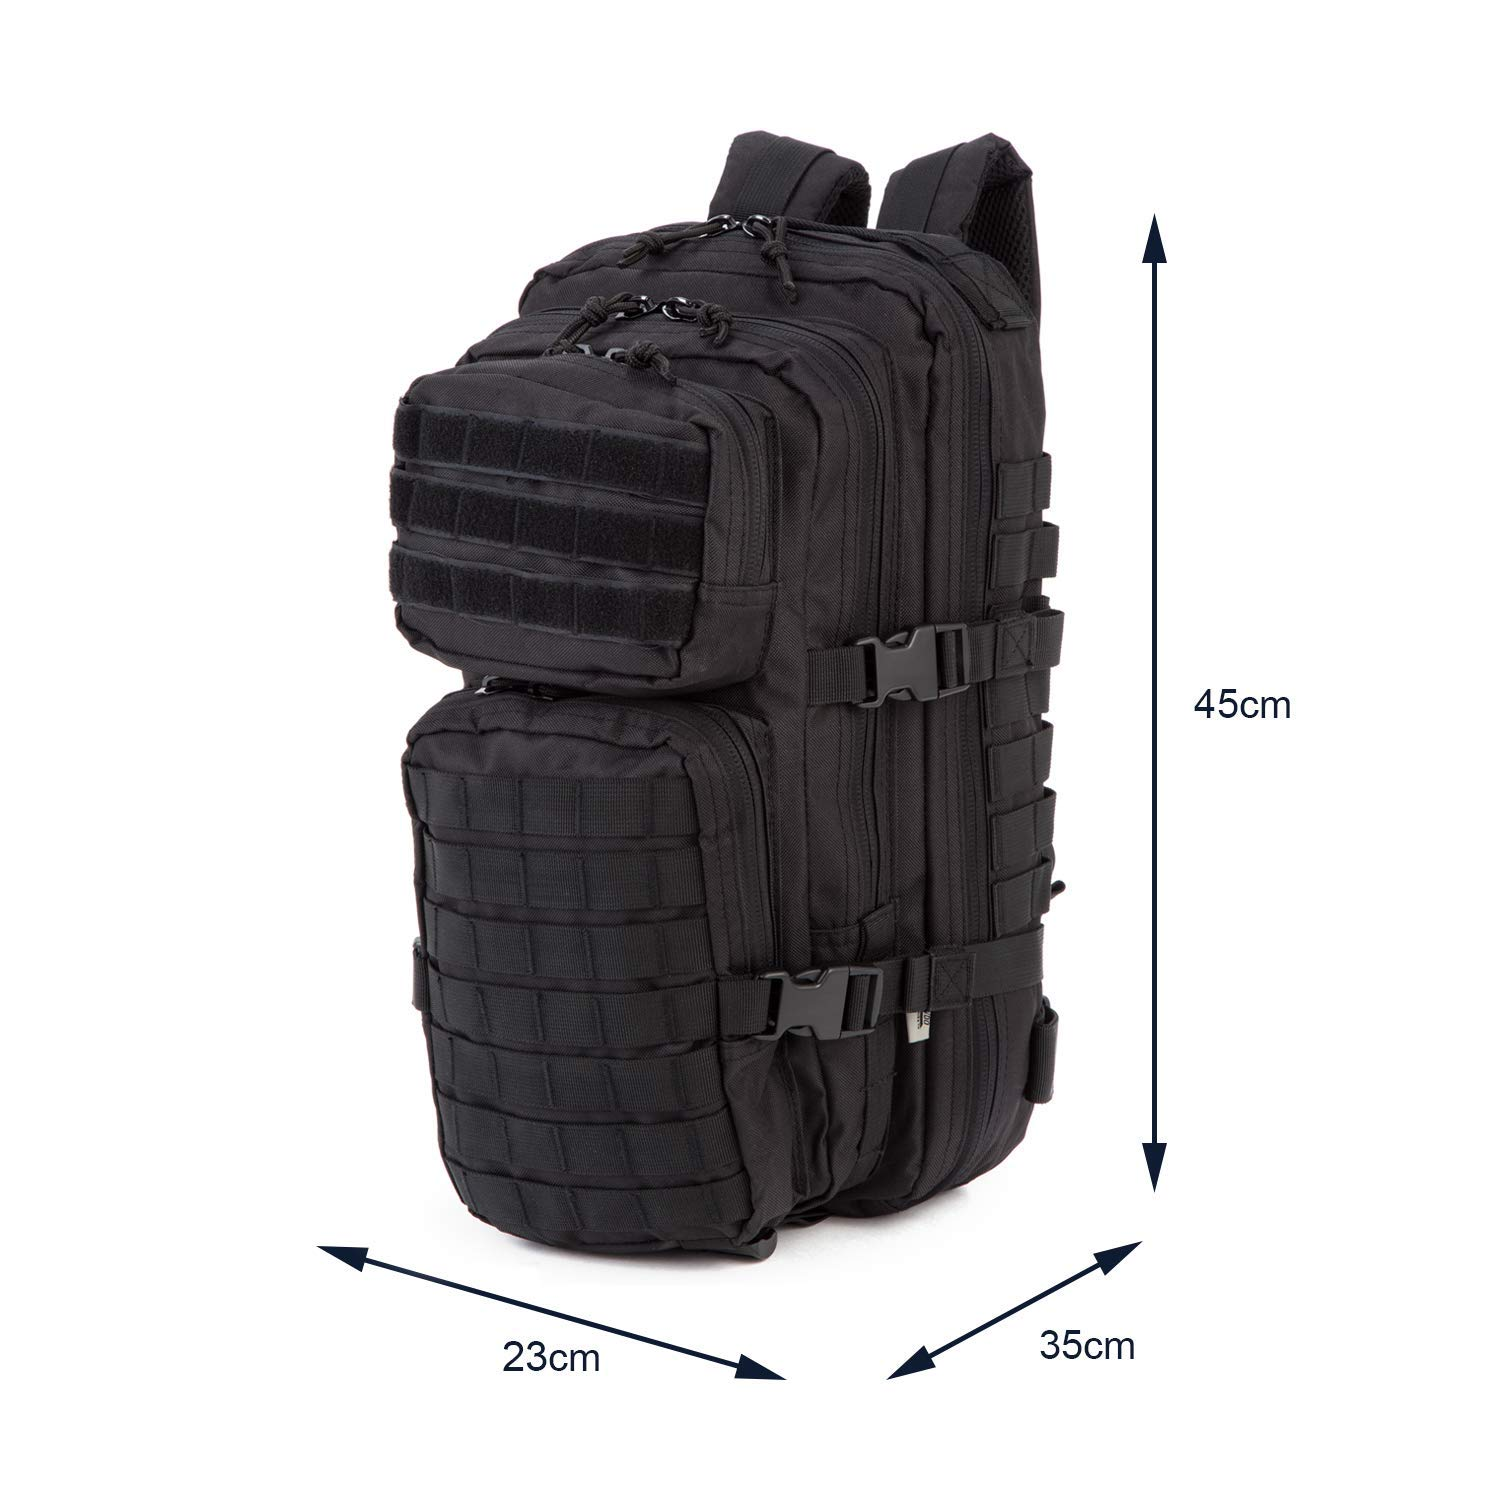 Amazon.com : Commando-Industries US Army Assault Pack I Backpack Combat Backpack Back 30 Litre Liter (Black) : Sports & Outdoors